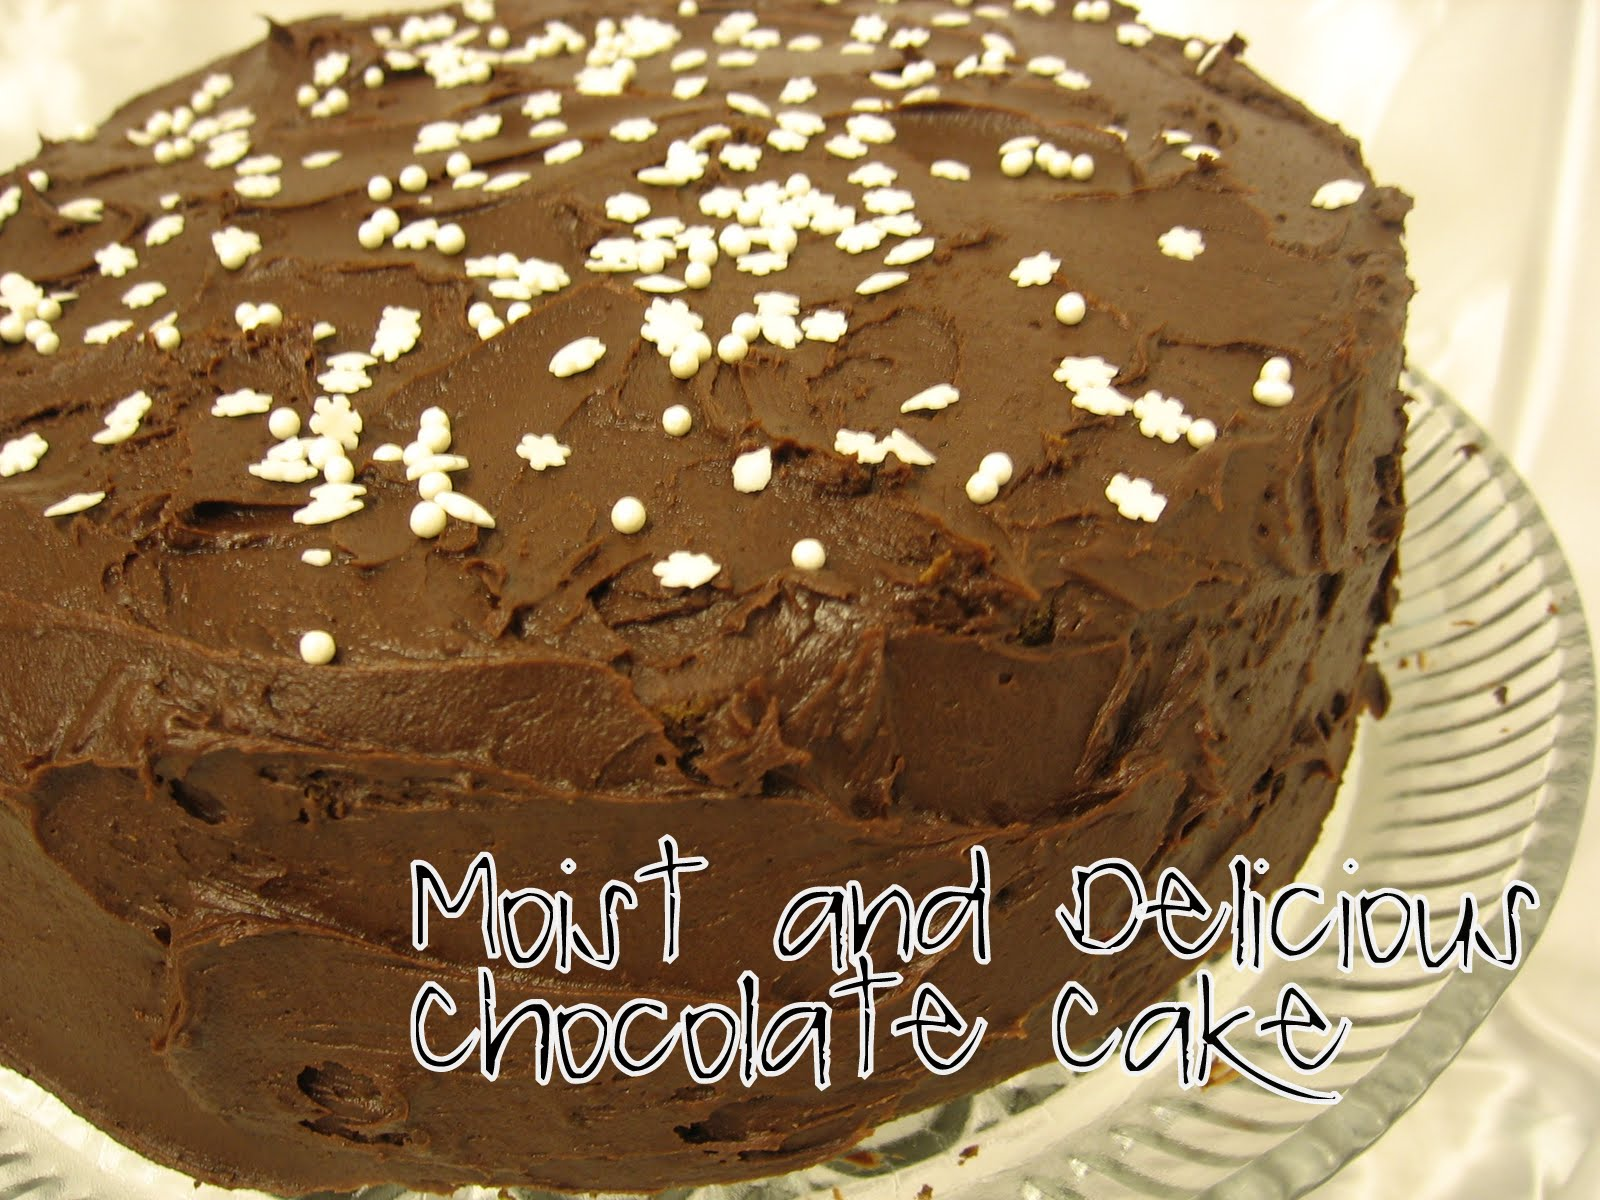 Chocolate Cake Recipe From Scratch: The Mommy Diaries: Delicious Chocolate Cake {from Scratch}